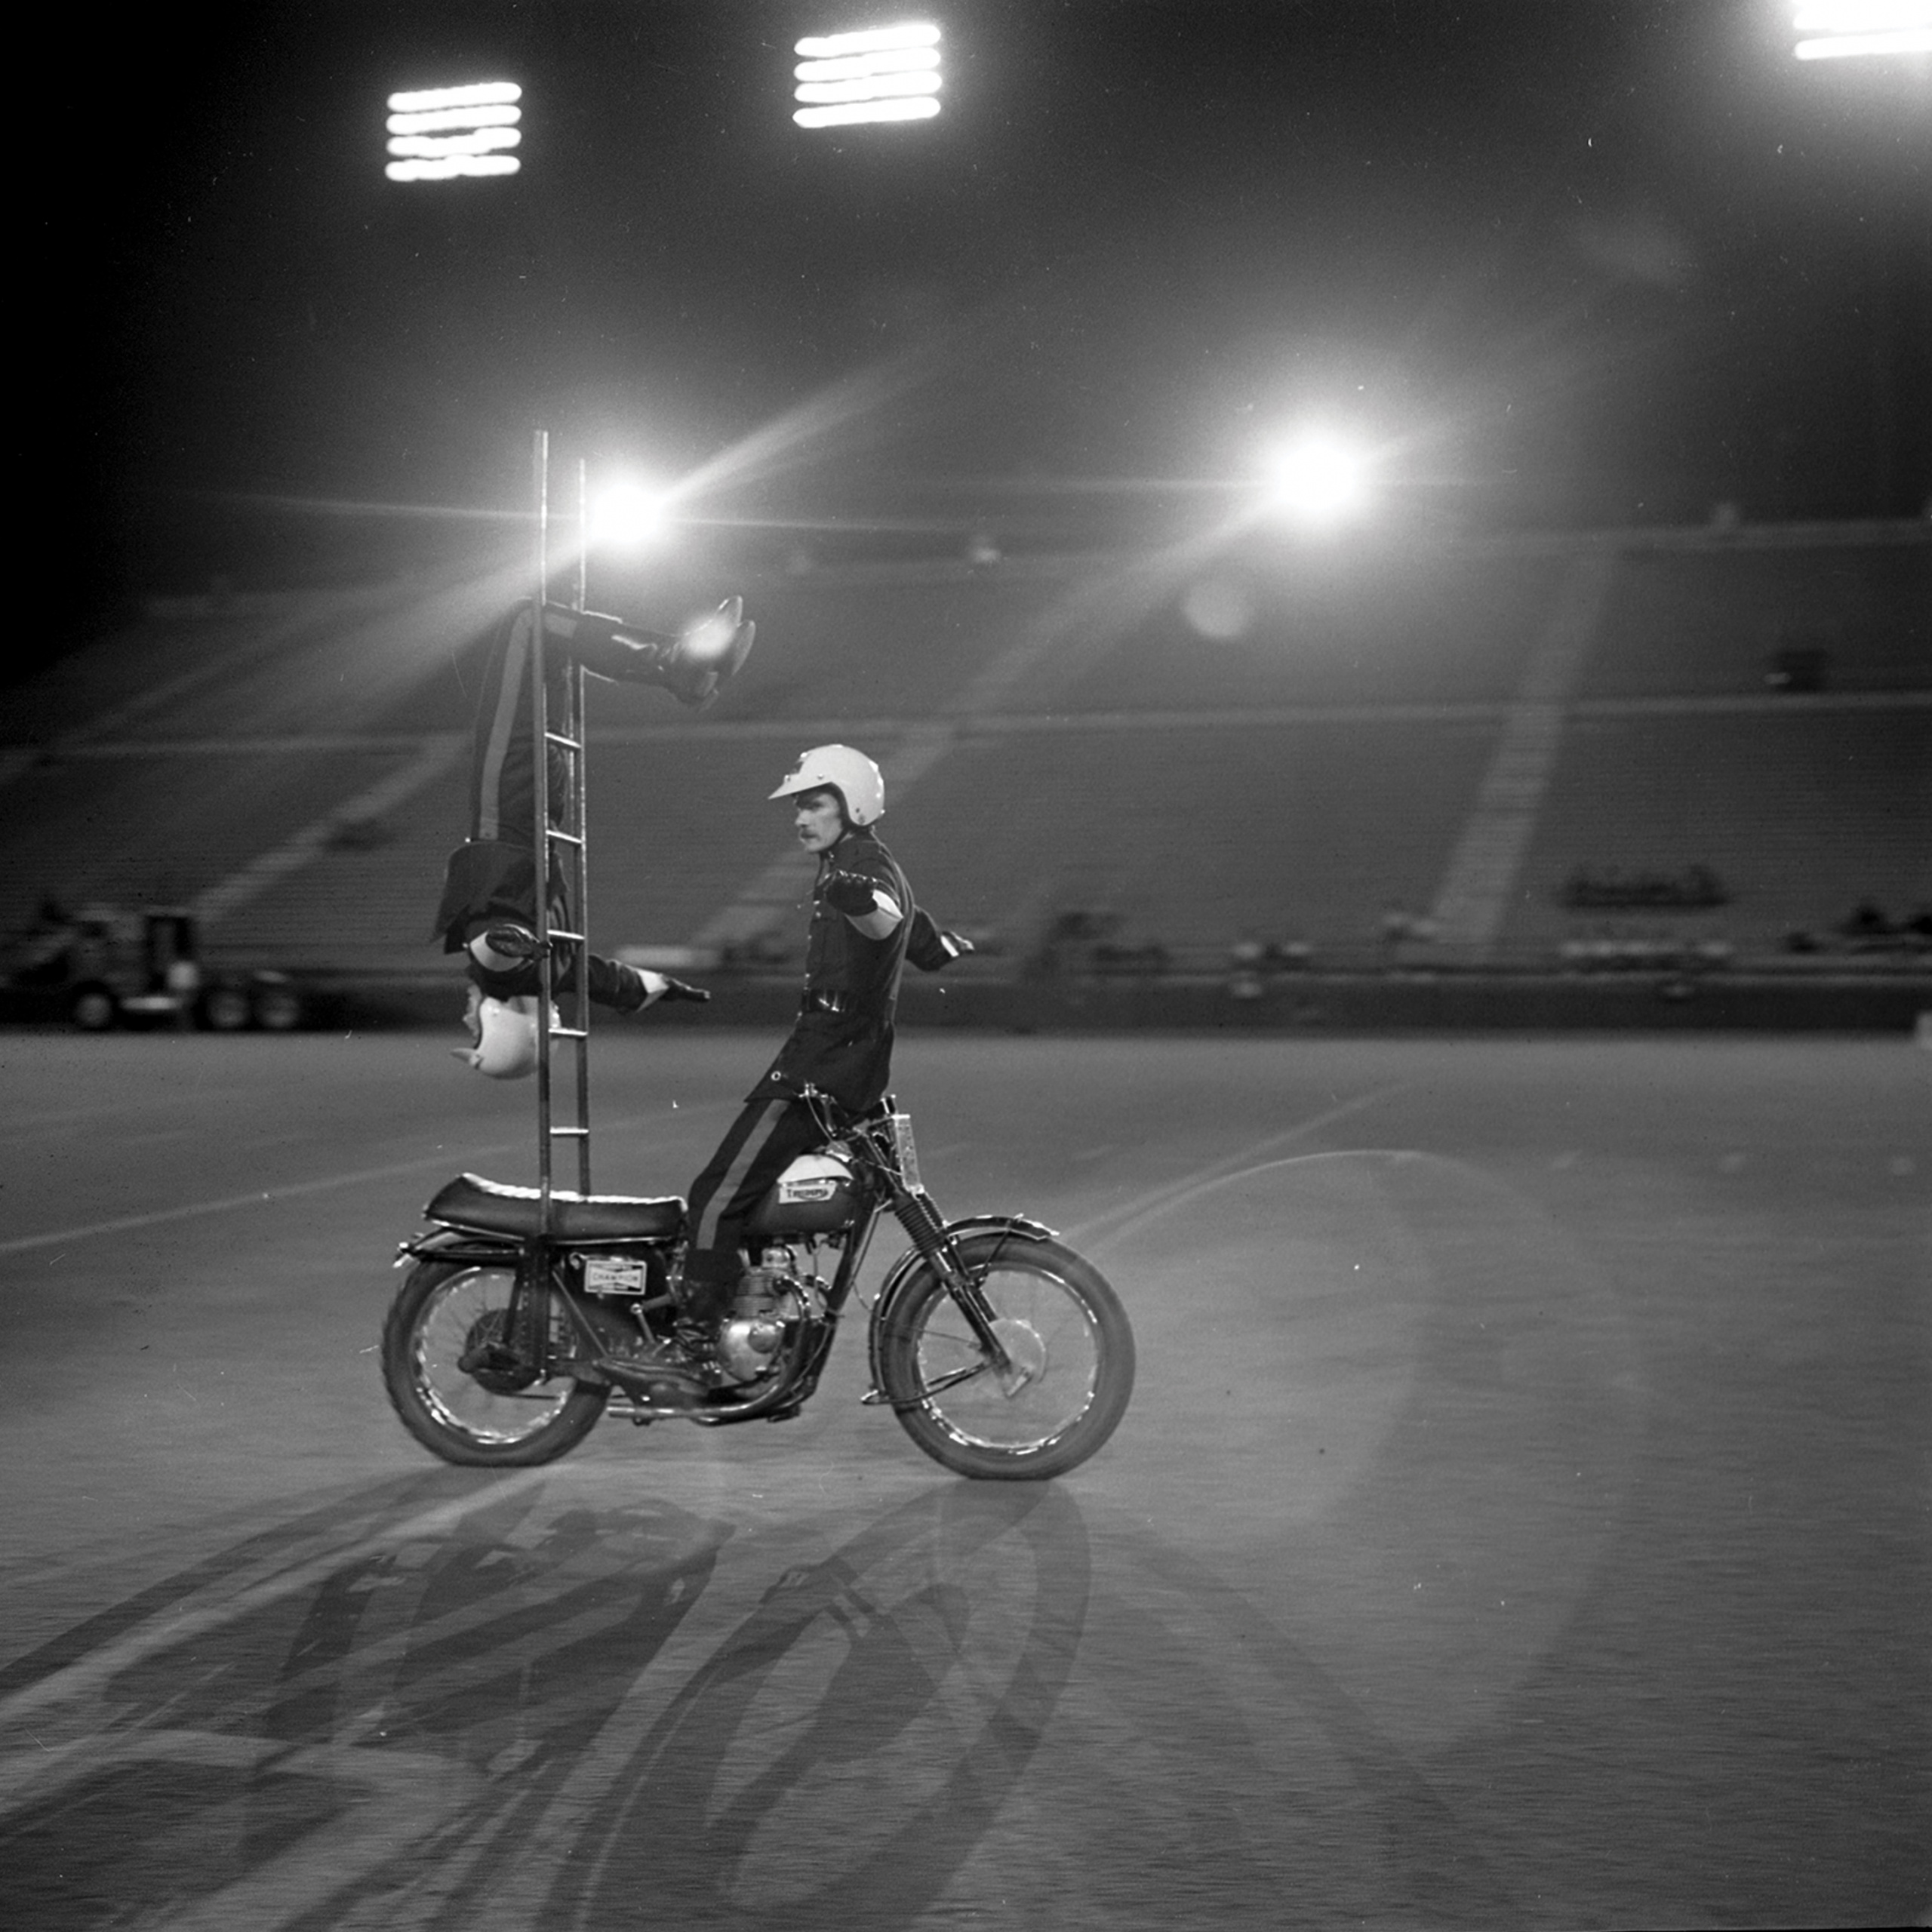 Motorcycle Rehearsal at CNE Grandstand, 1974. Canadian National Exhibition Archives, MG5-F3570-I5. Courtesy of the CNEA